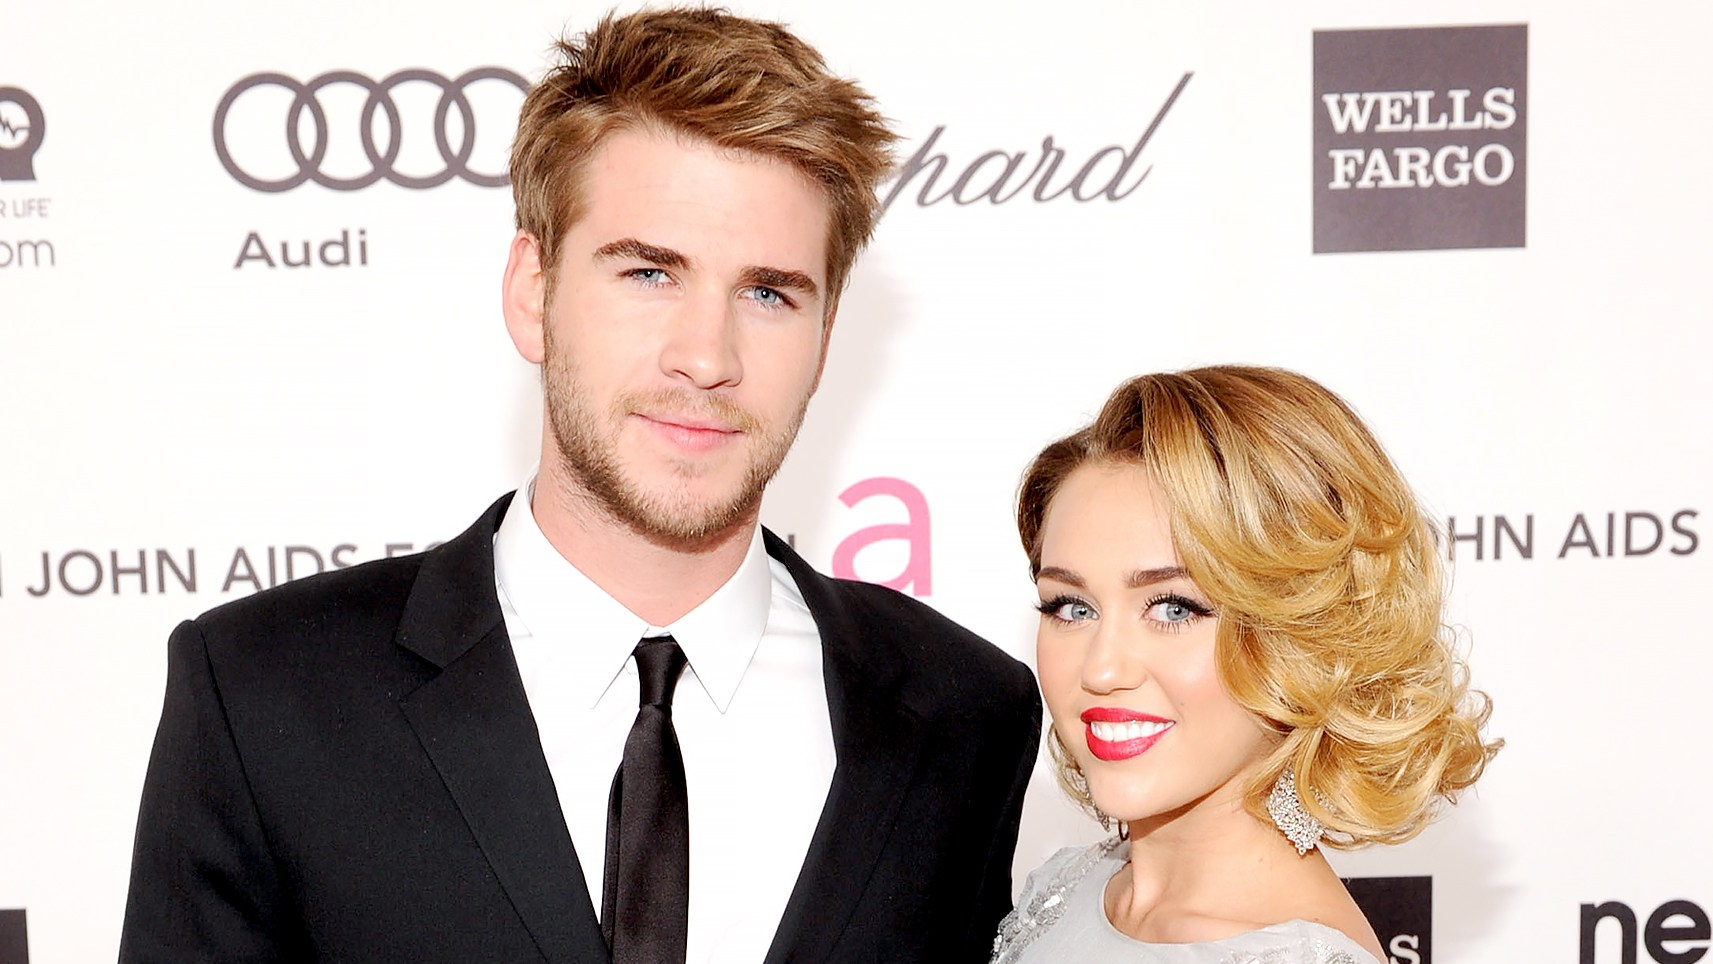 Liam Hemsworth and Miley Cyrus arrive at the 20th Annual Elton John AIDS Foundation Academy Awards Viewing Party at The City of West Hollywood Park on February 26, 2012 in Beverly Hills, California.